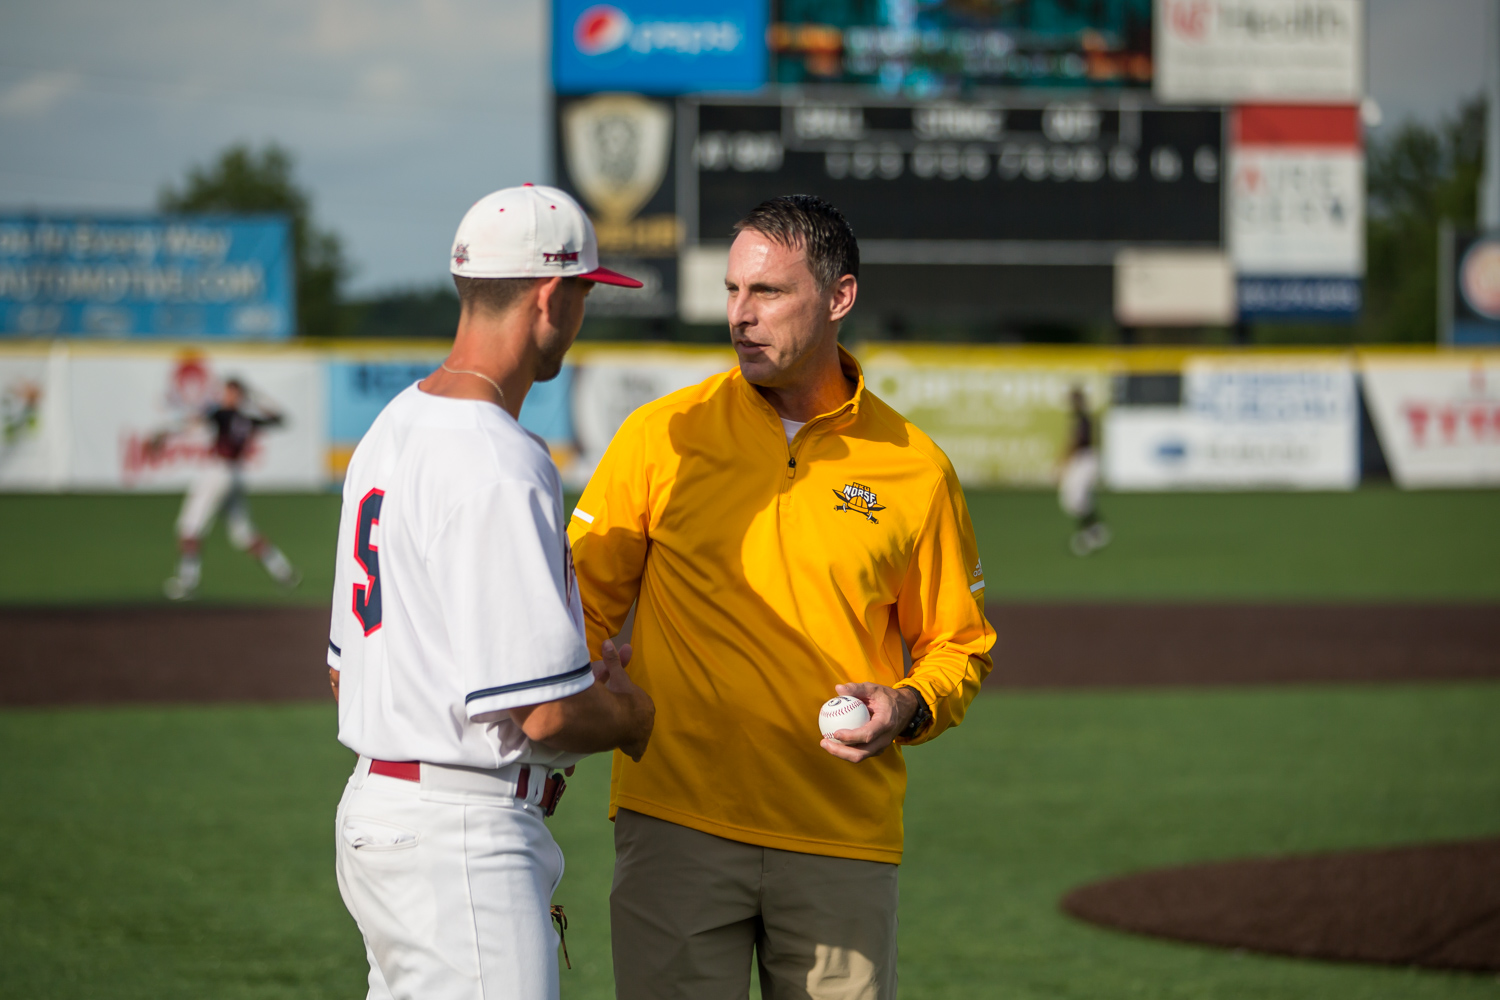 Men%27s+Basketball+Head+Coach+Darrin+Horn+receives+the+first+pitch+ball+from+a+Florence+Freedom+player.